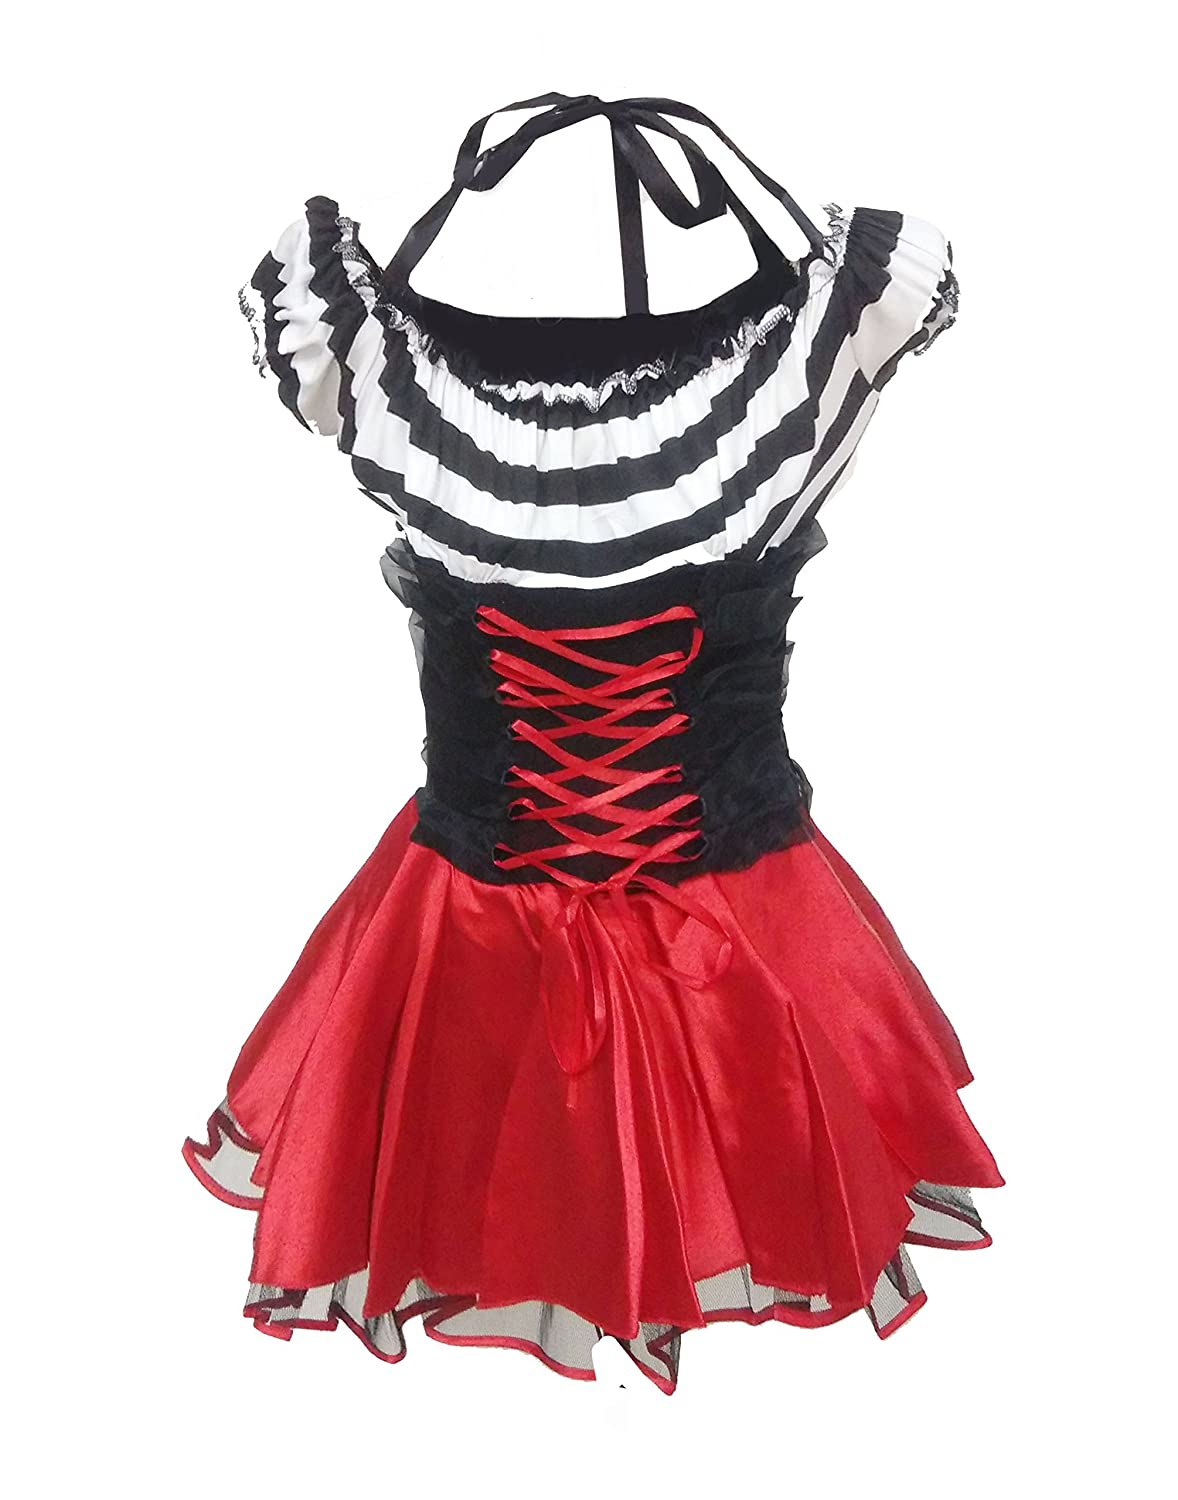 Bslingerie Women Prison Break Pirate Fancy Halloween Costume Dress Amazon In Clothing Accessories